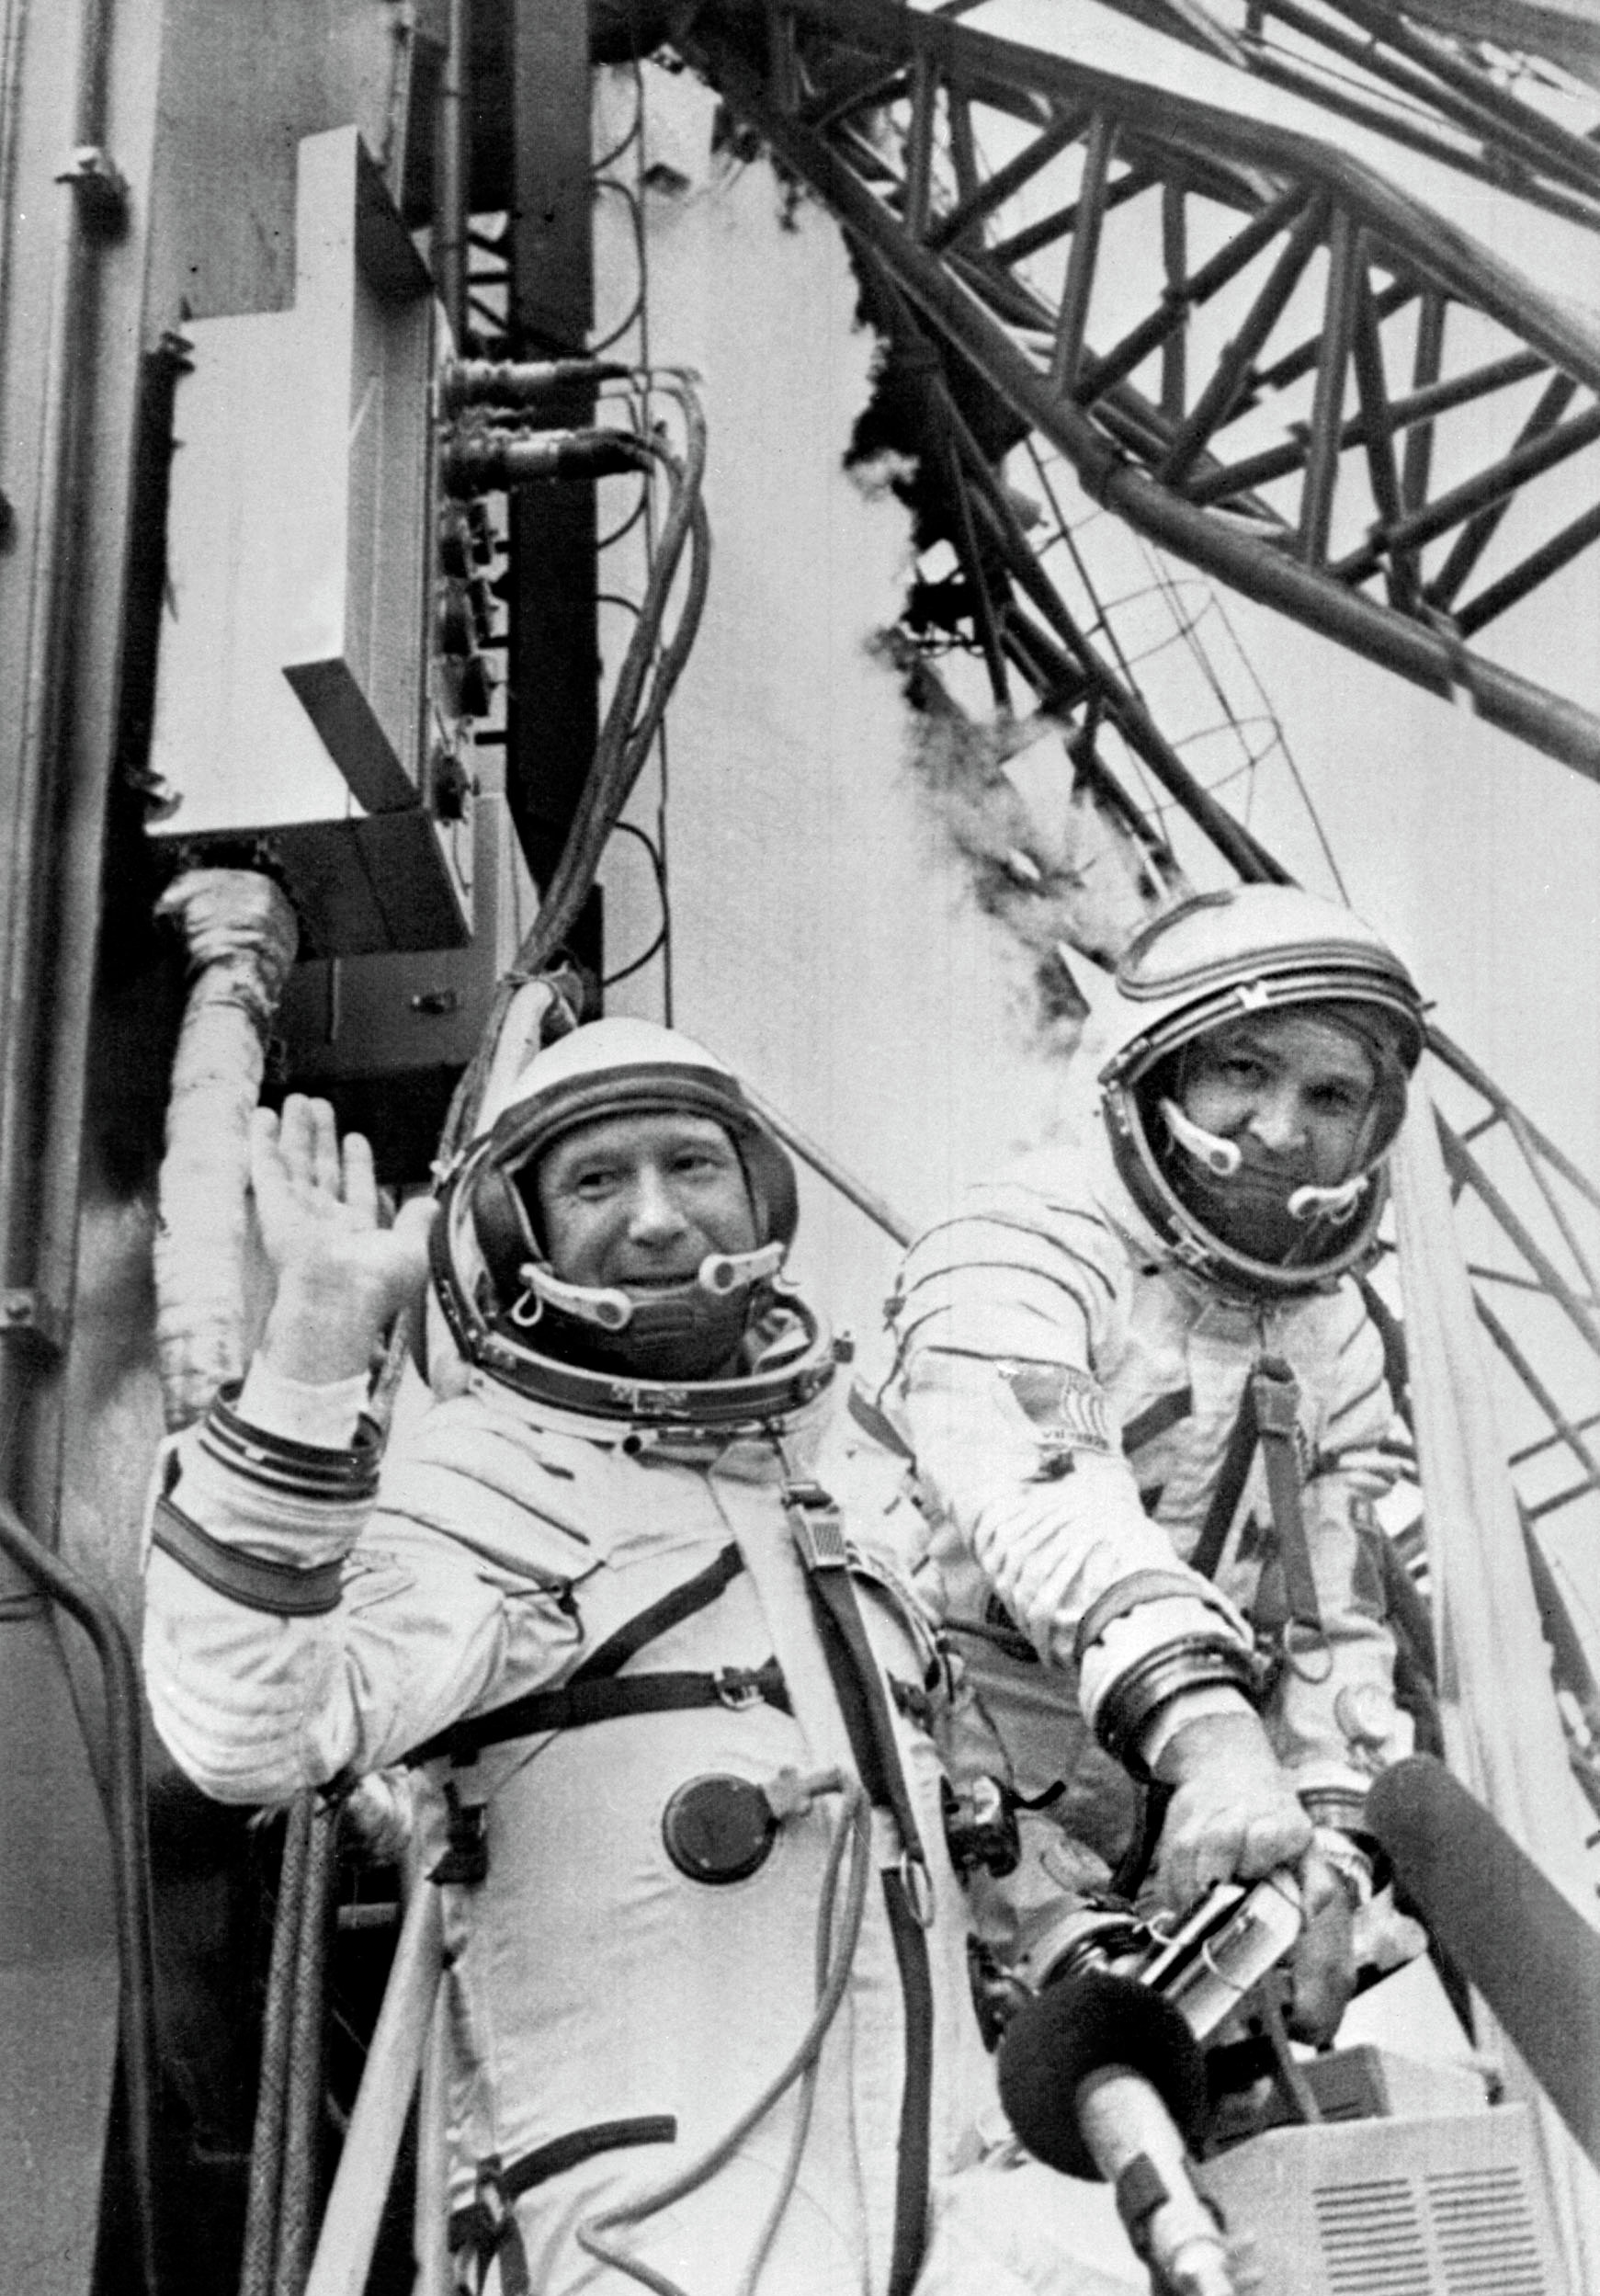 Russian cosmonauts commander Alexei Leonov (L) and V. Kubasov wave to the people while getting in their spaceship Soyuz ready to be launched 15 July 1975 from Baïkonour